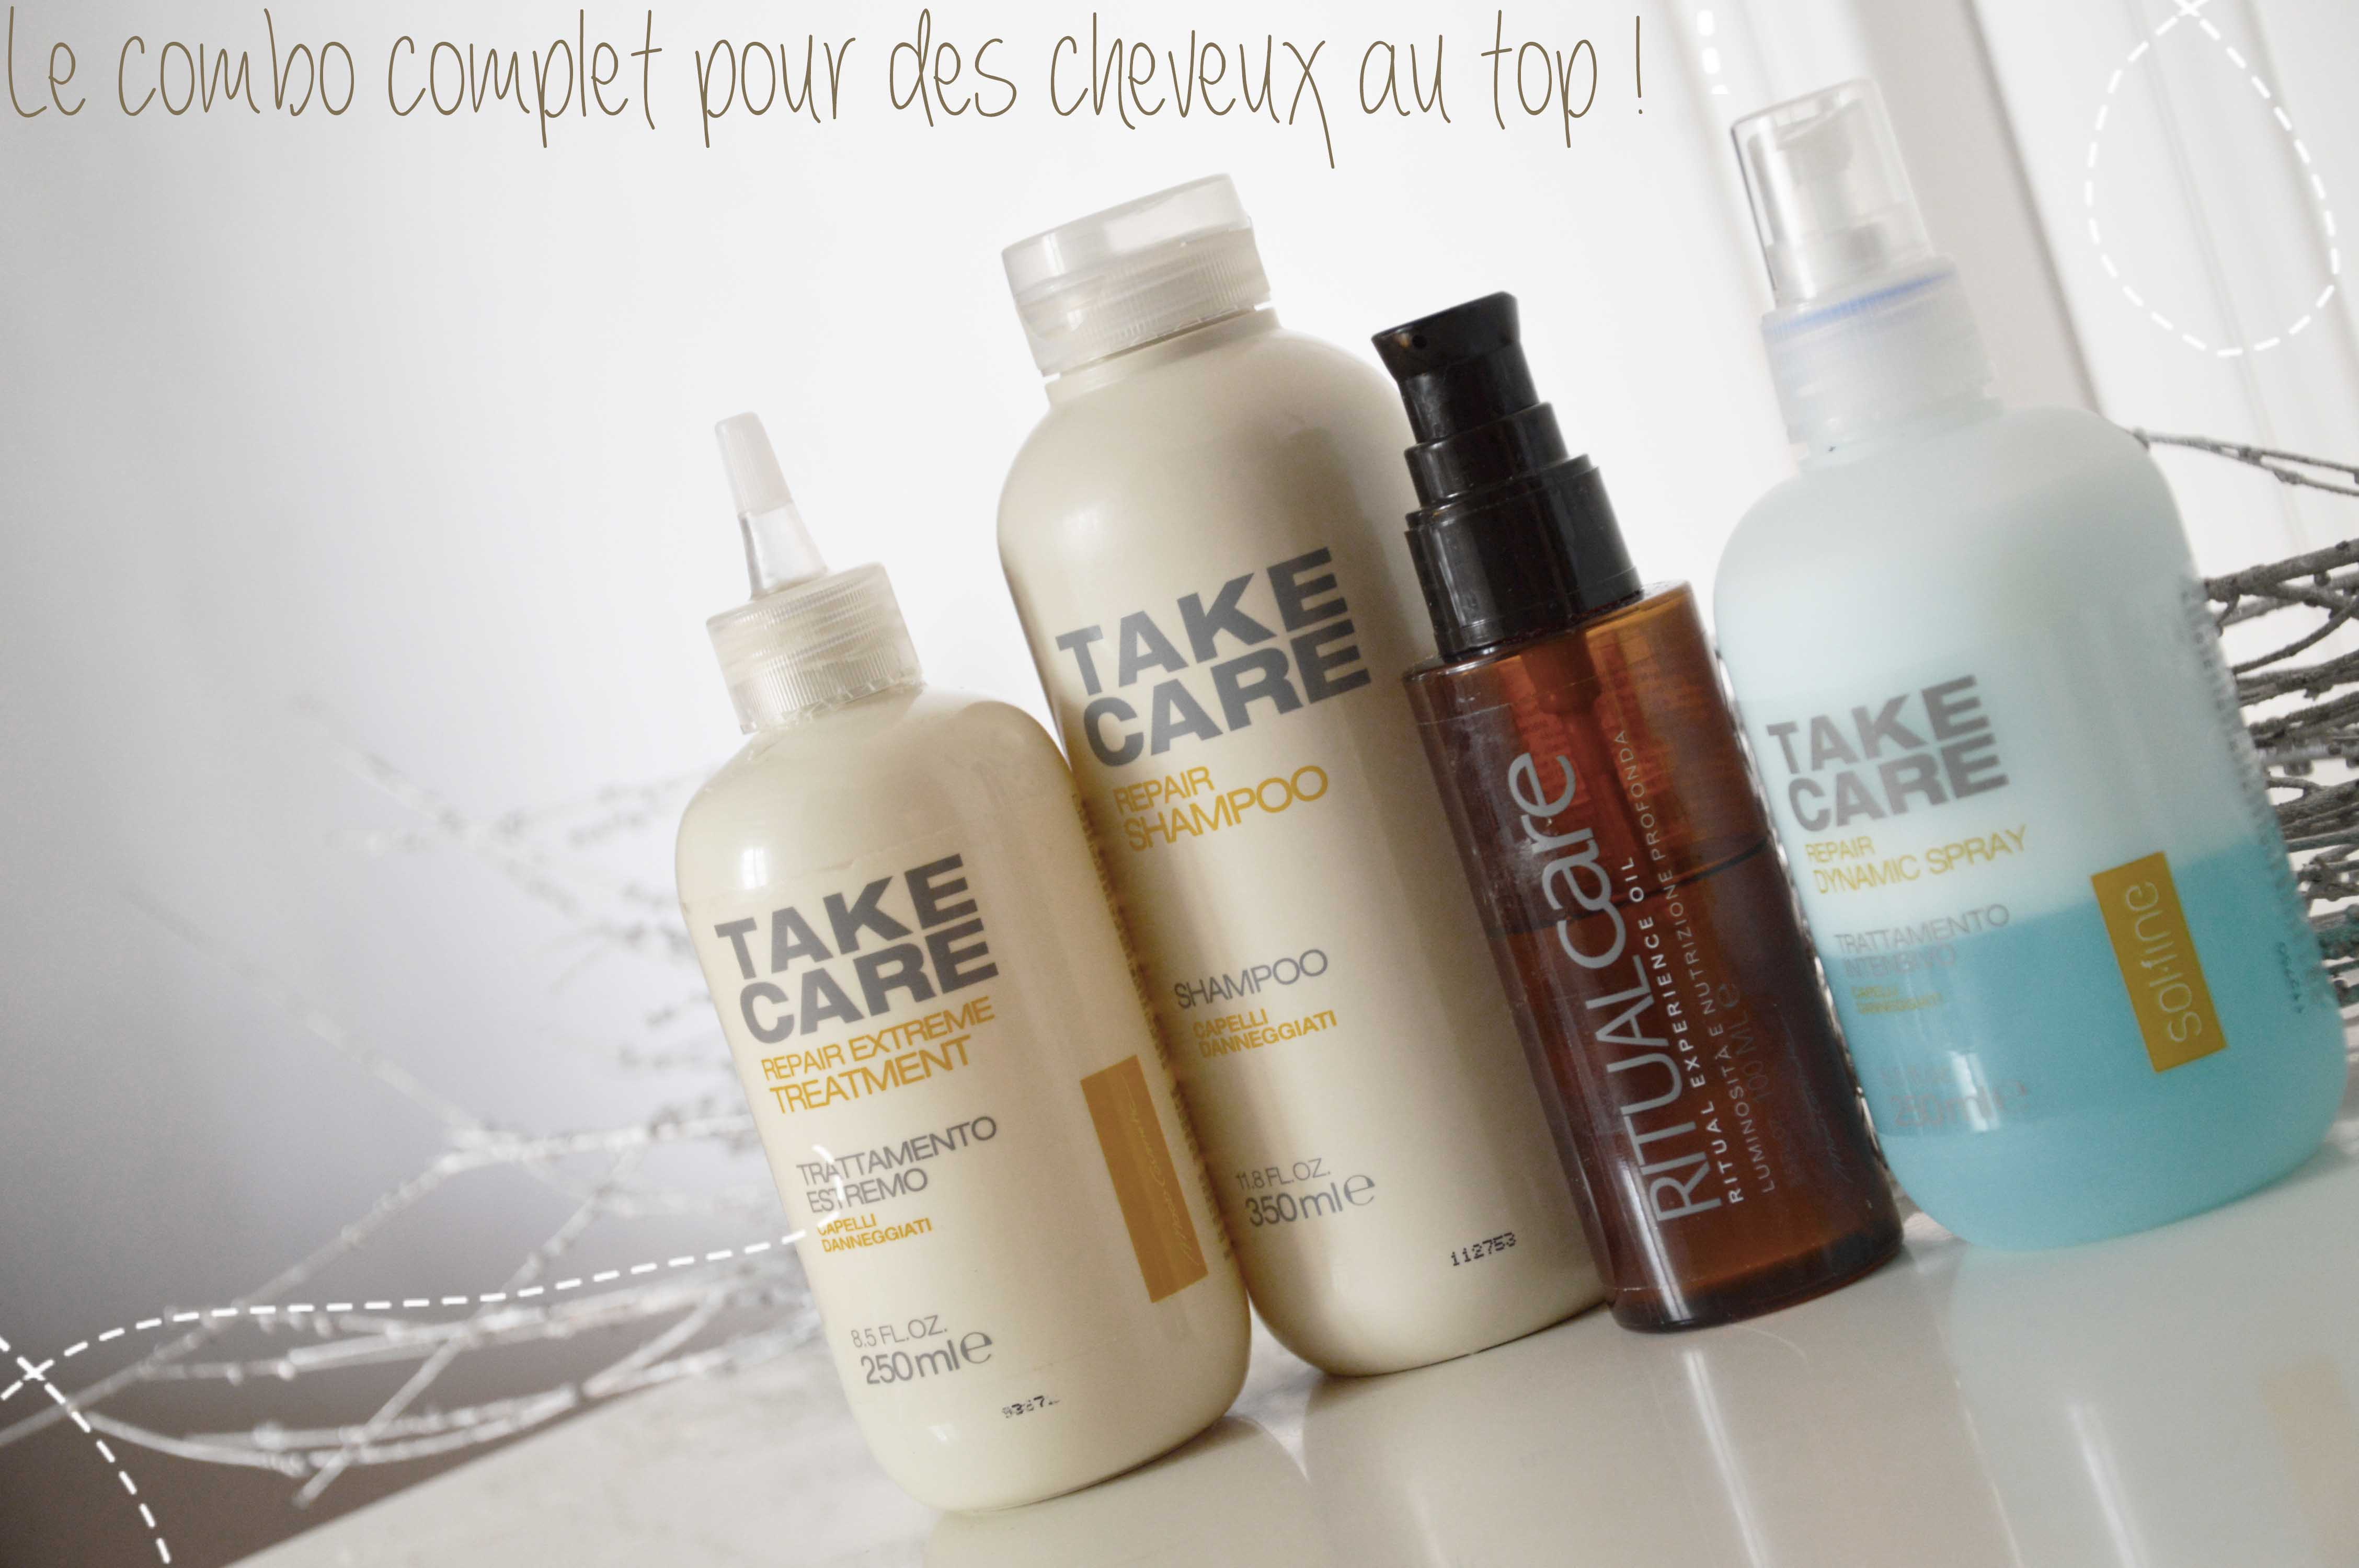 ALITTLEB_BLOG_BEAUTE_ROUTINE_CHEVEUX_HIVER_AUTOMNE_SOLFINE_GAMME_COMPLETE